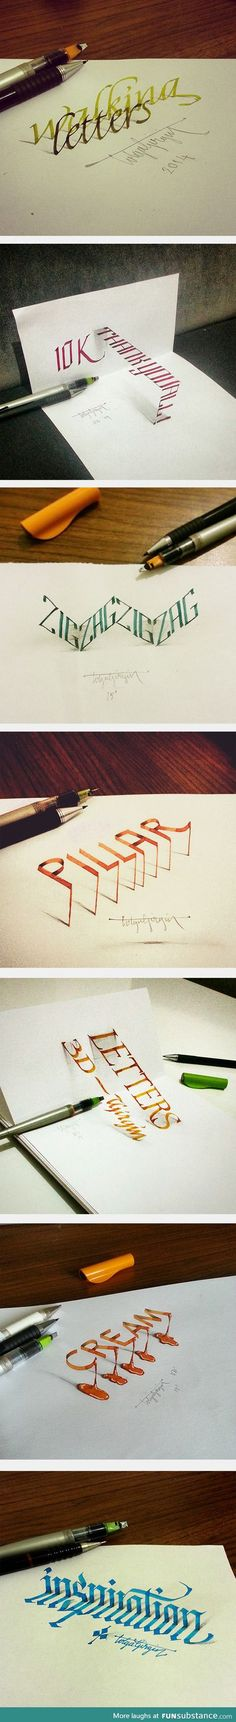 Amazing examples of anamorphic lettering